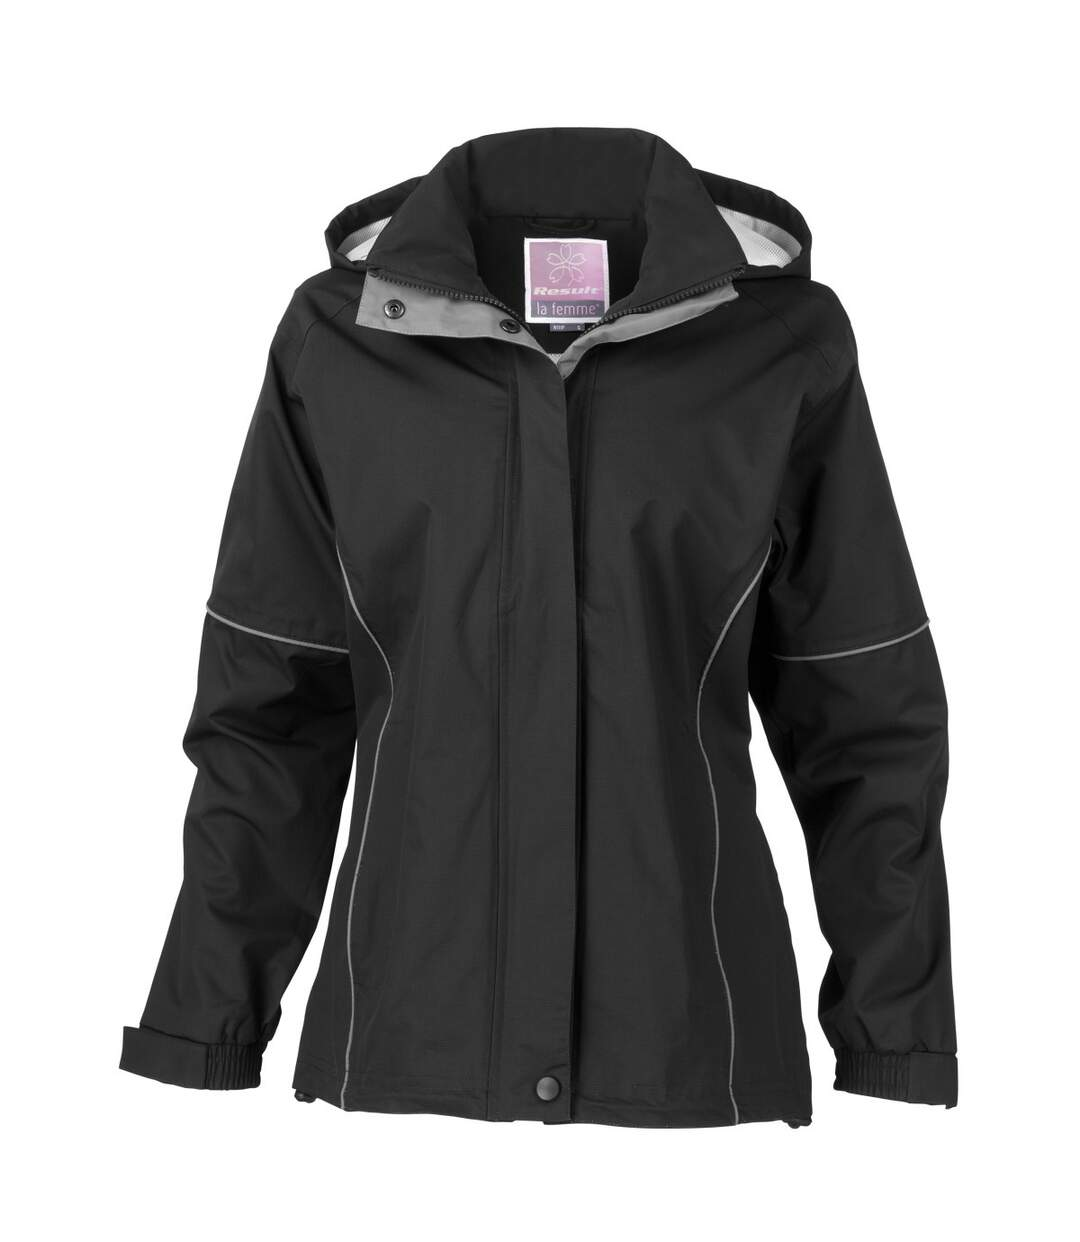 Result Womens/Ladies Urban Fell Lightweight Technical Jacket (Waterproof & Windproof) (Black) - UTBC3049